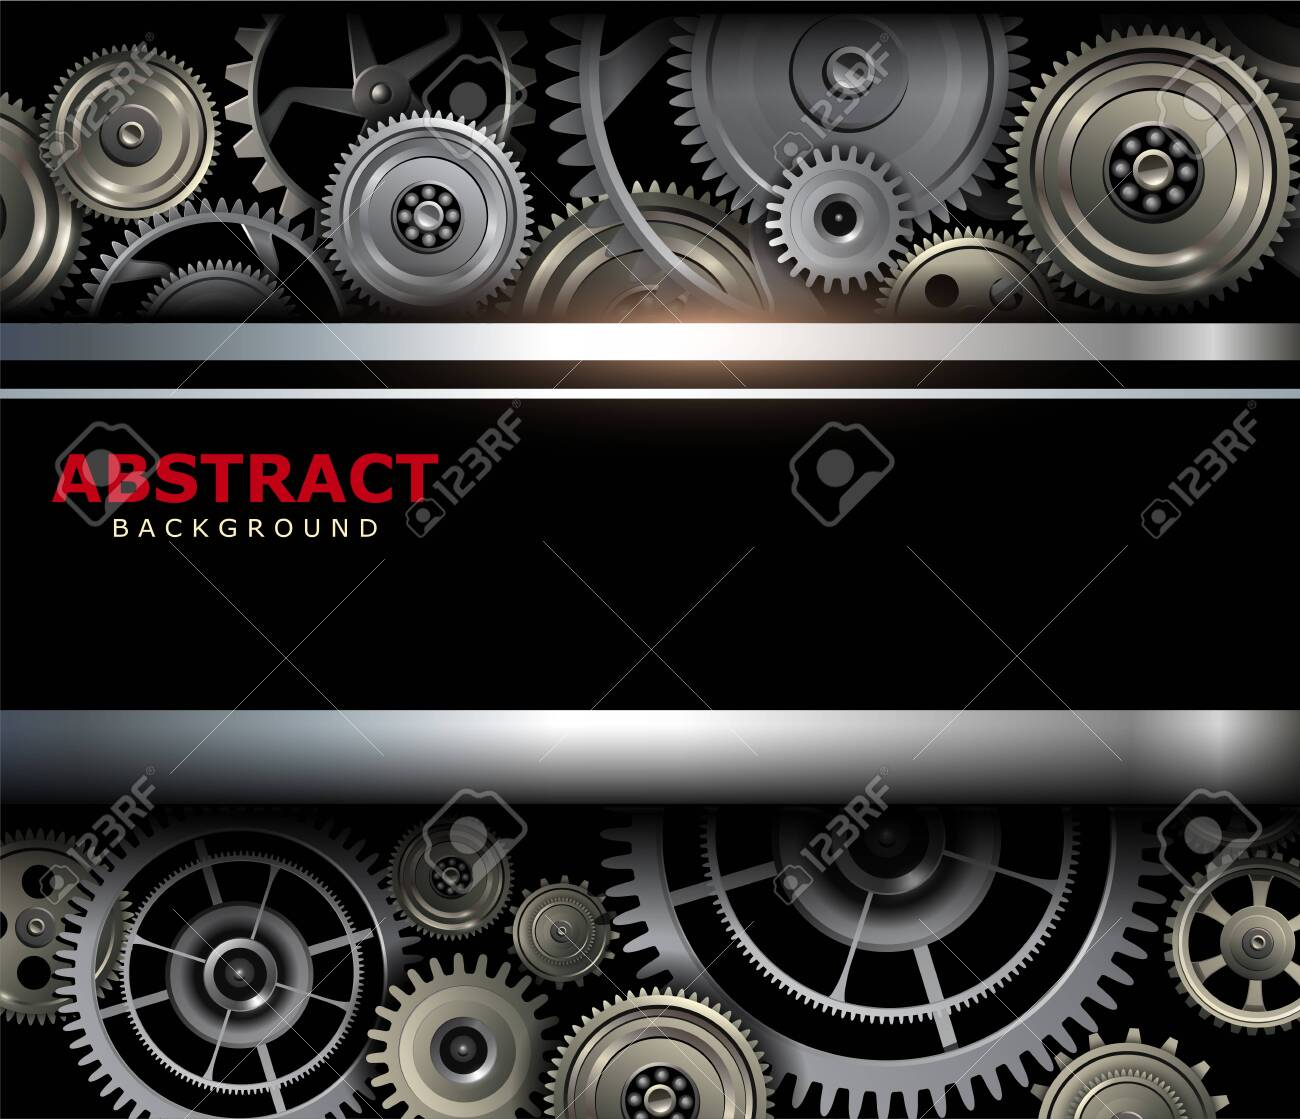 Background metallic with technology gears, vector illustration. - 144474978